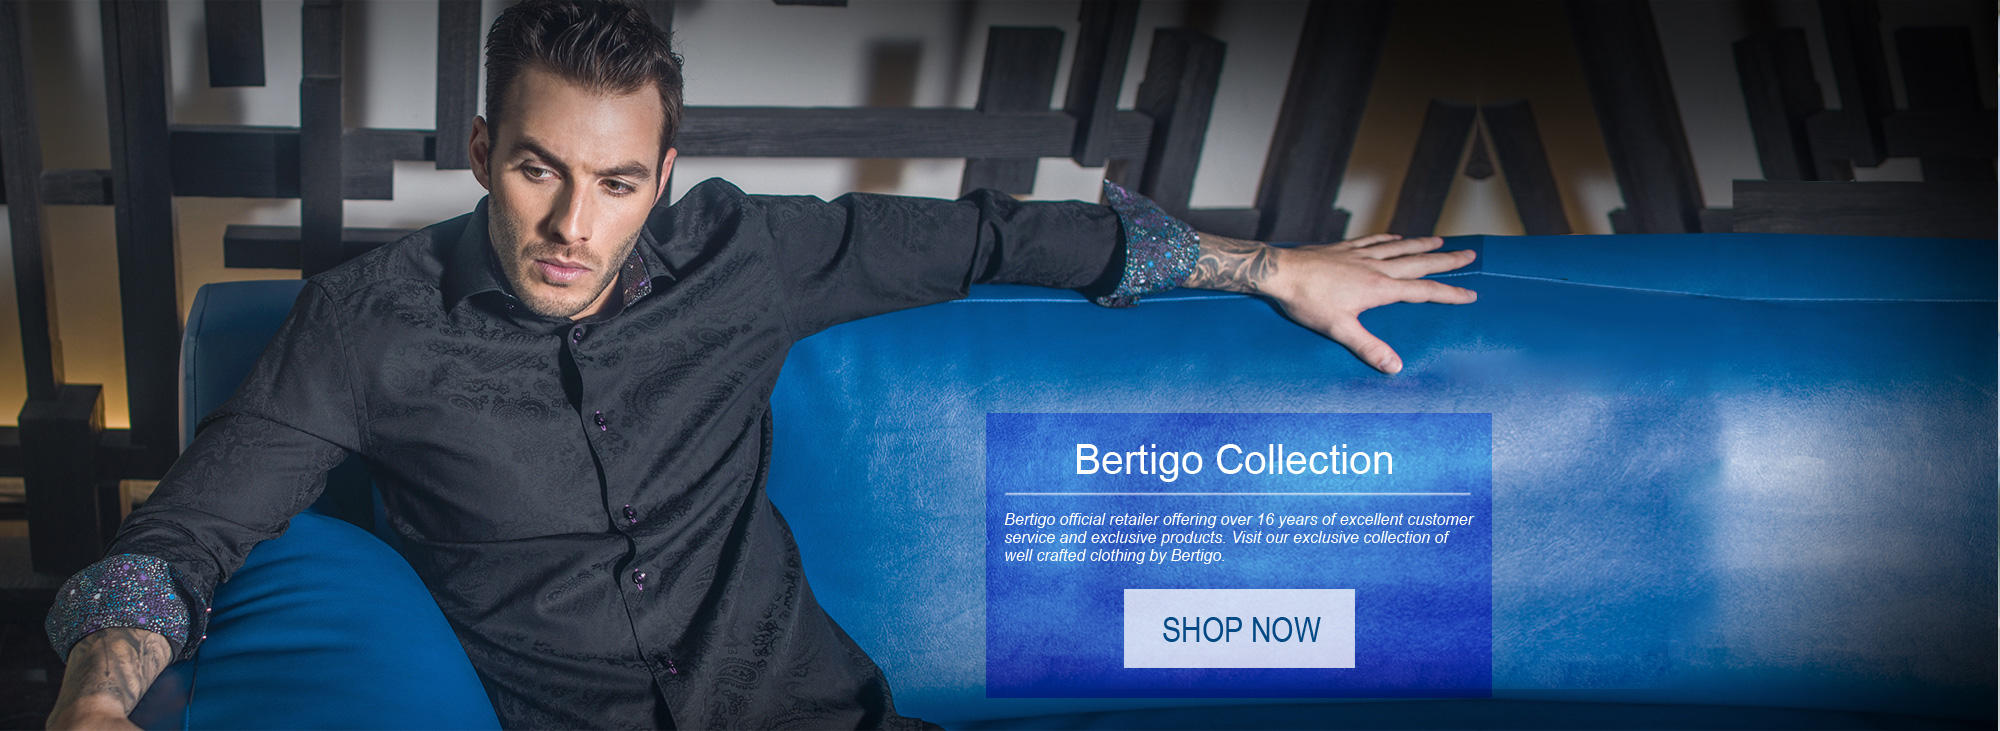 Bertigo Collection